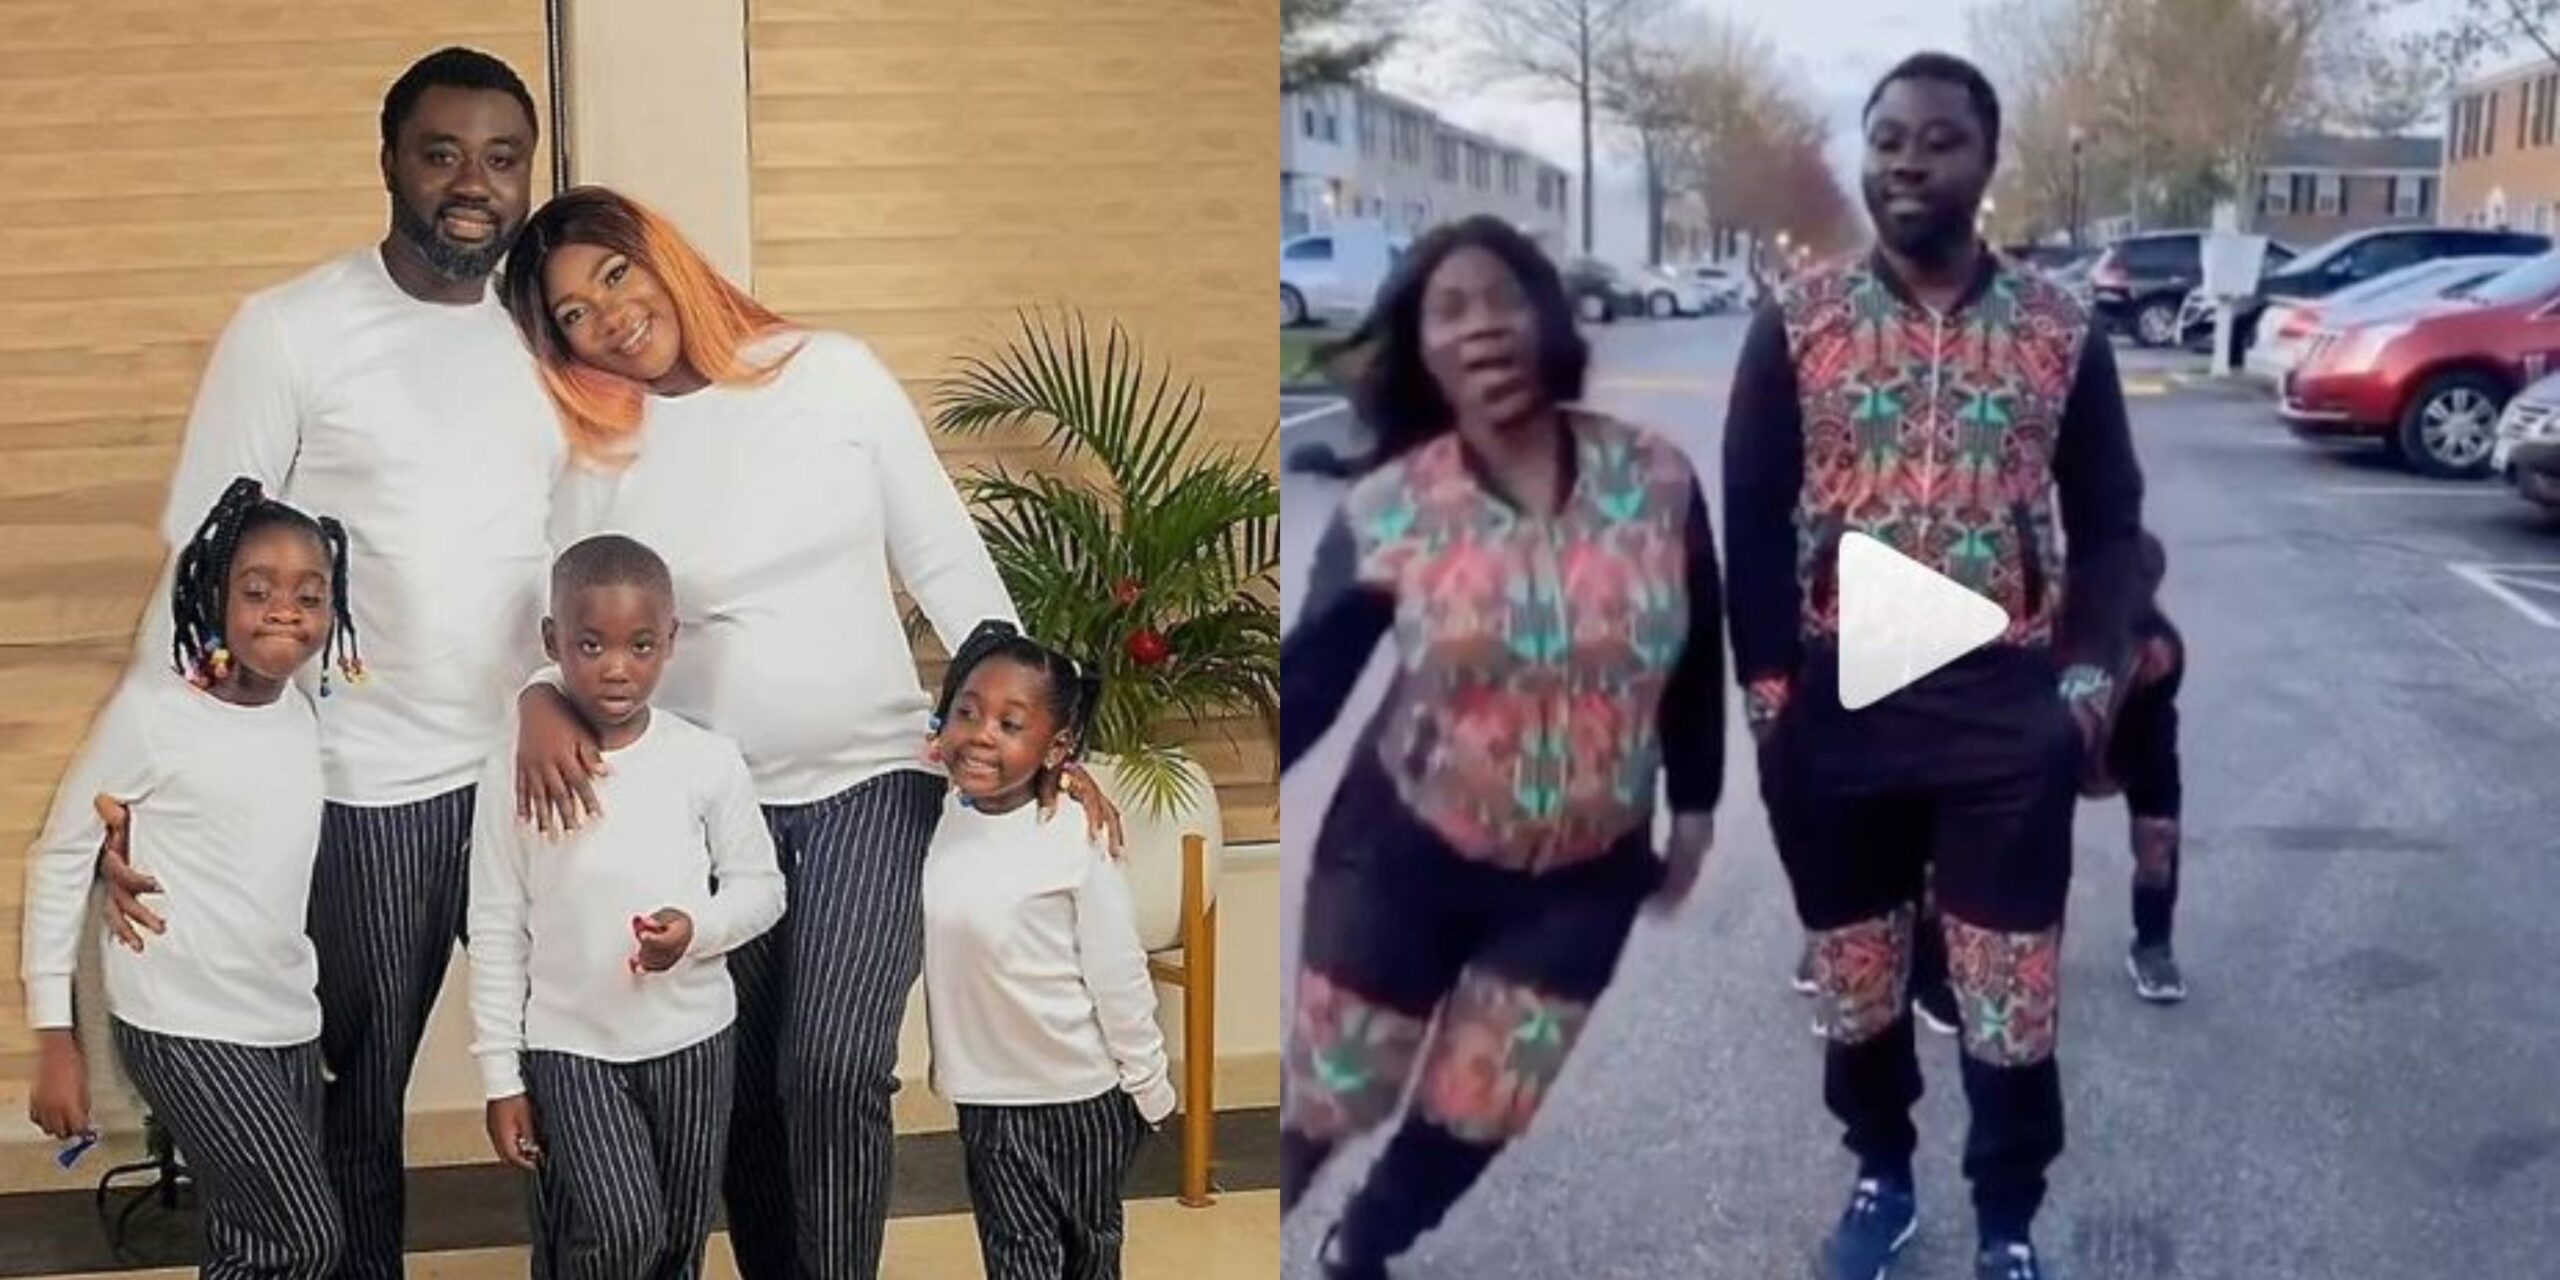 Mercy Johnson and her kids show off their dancing skills in new family choreography (Video)